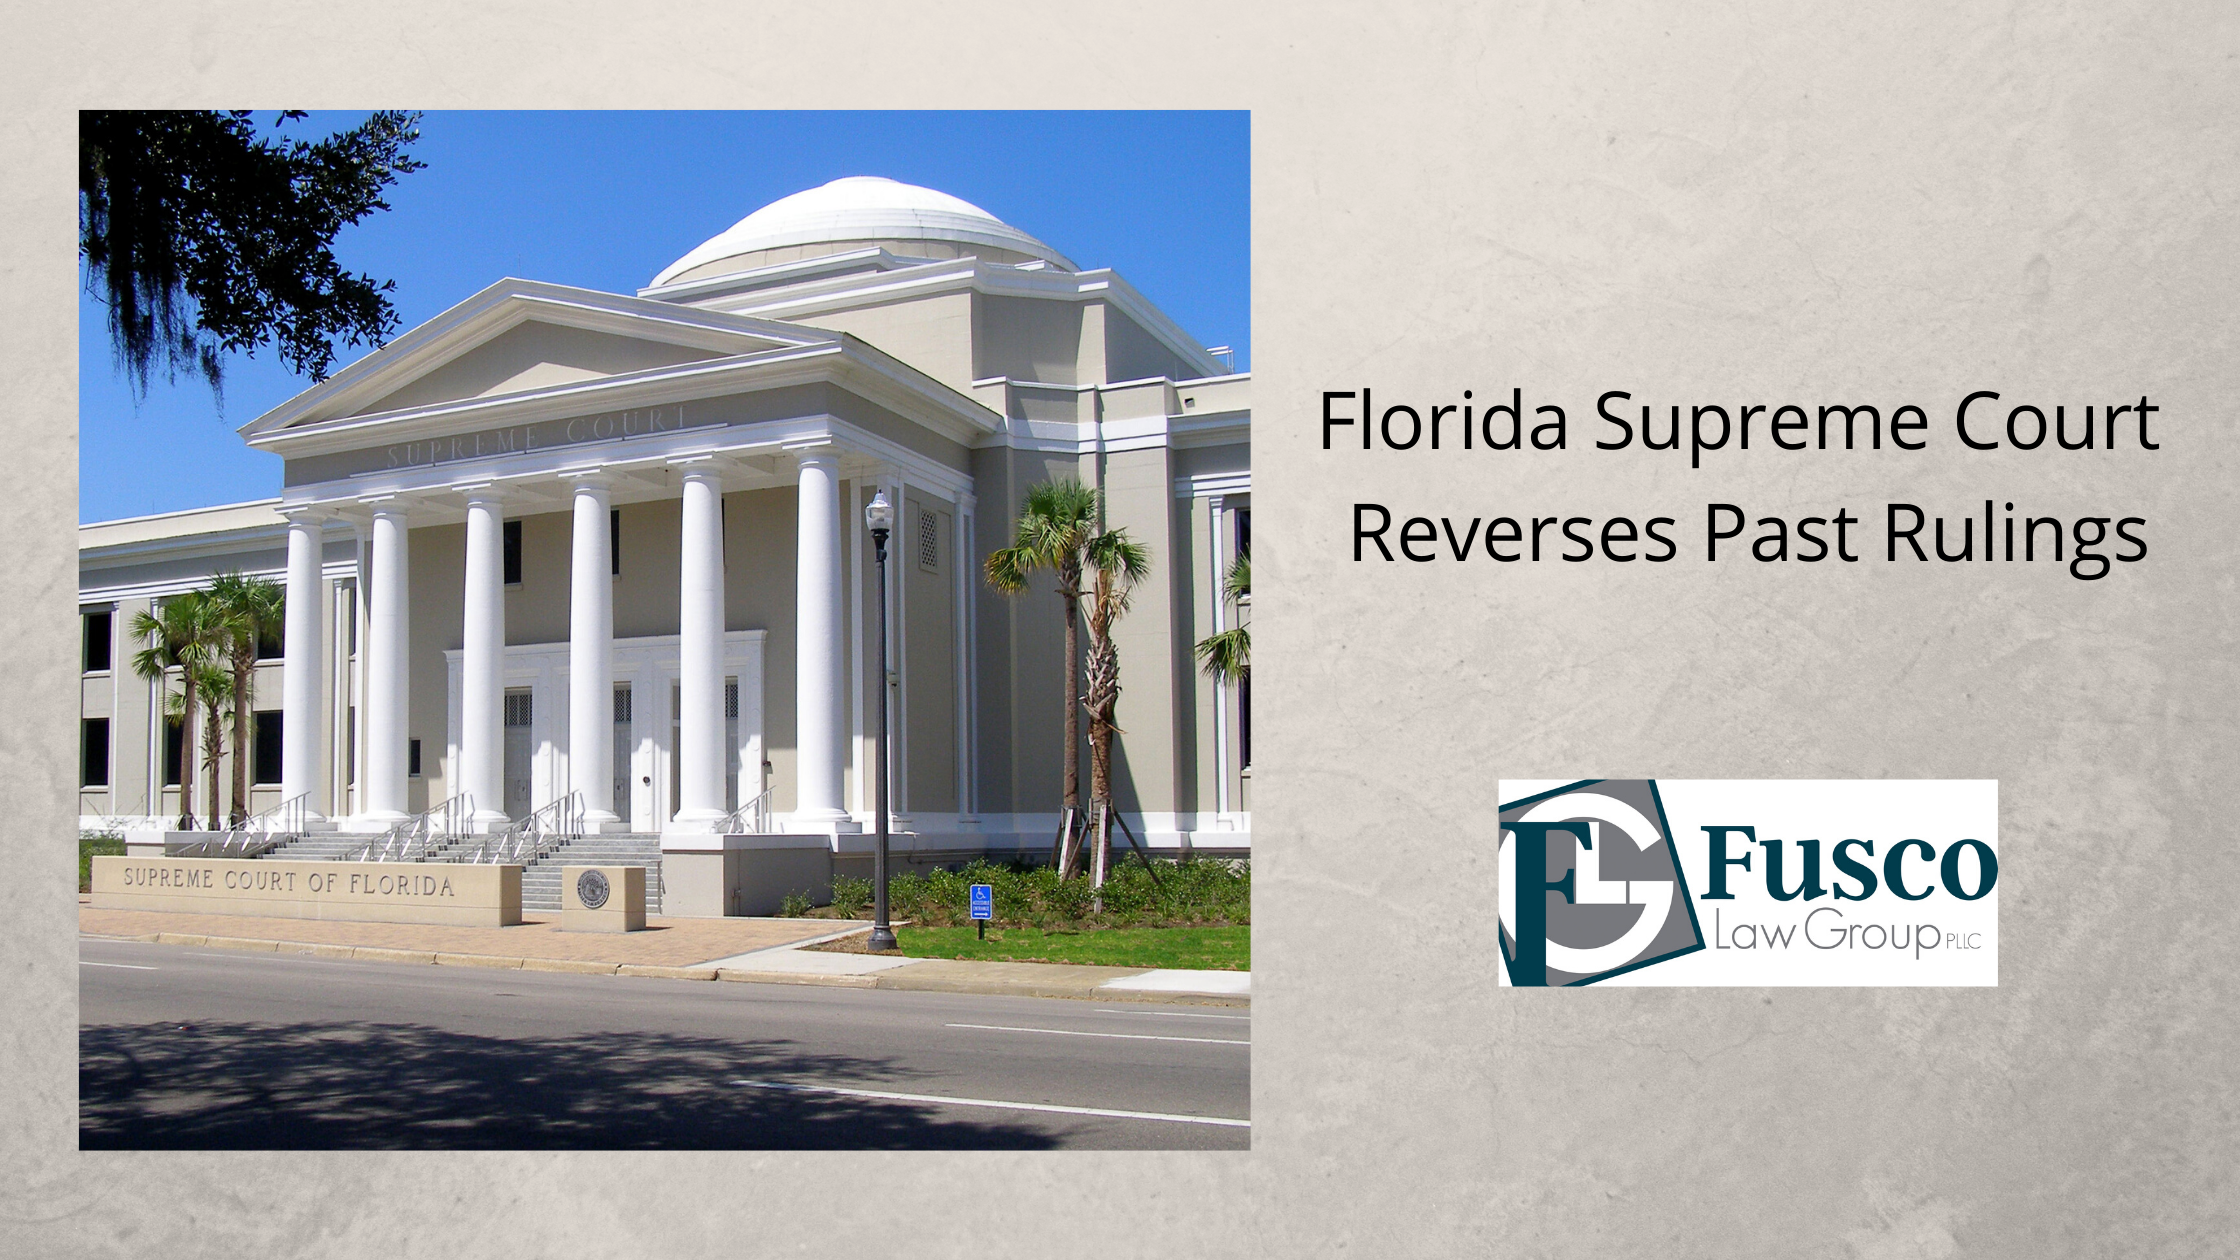 FL Supreme Court Reverses Rulings